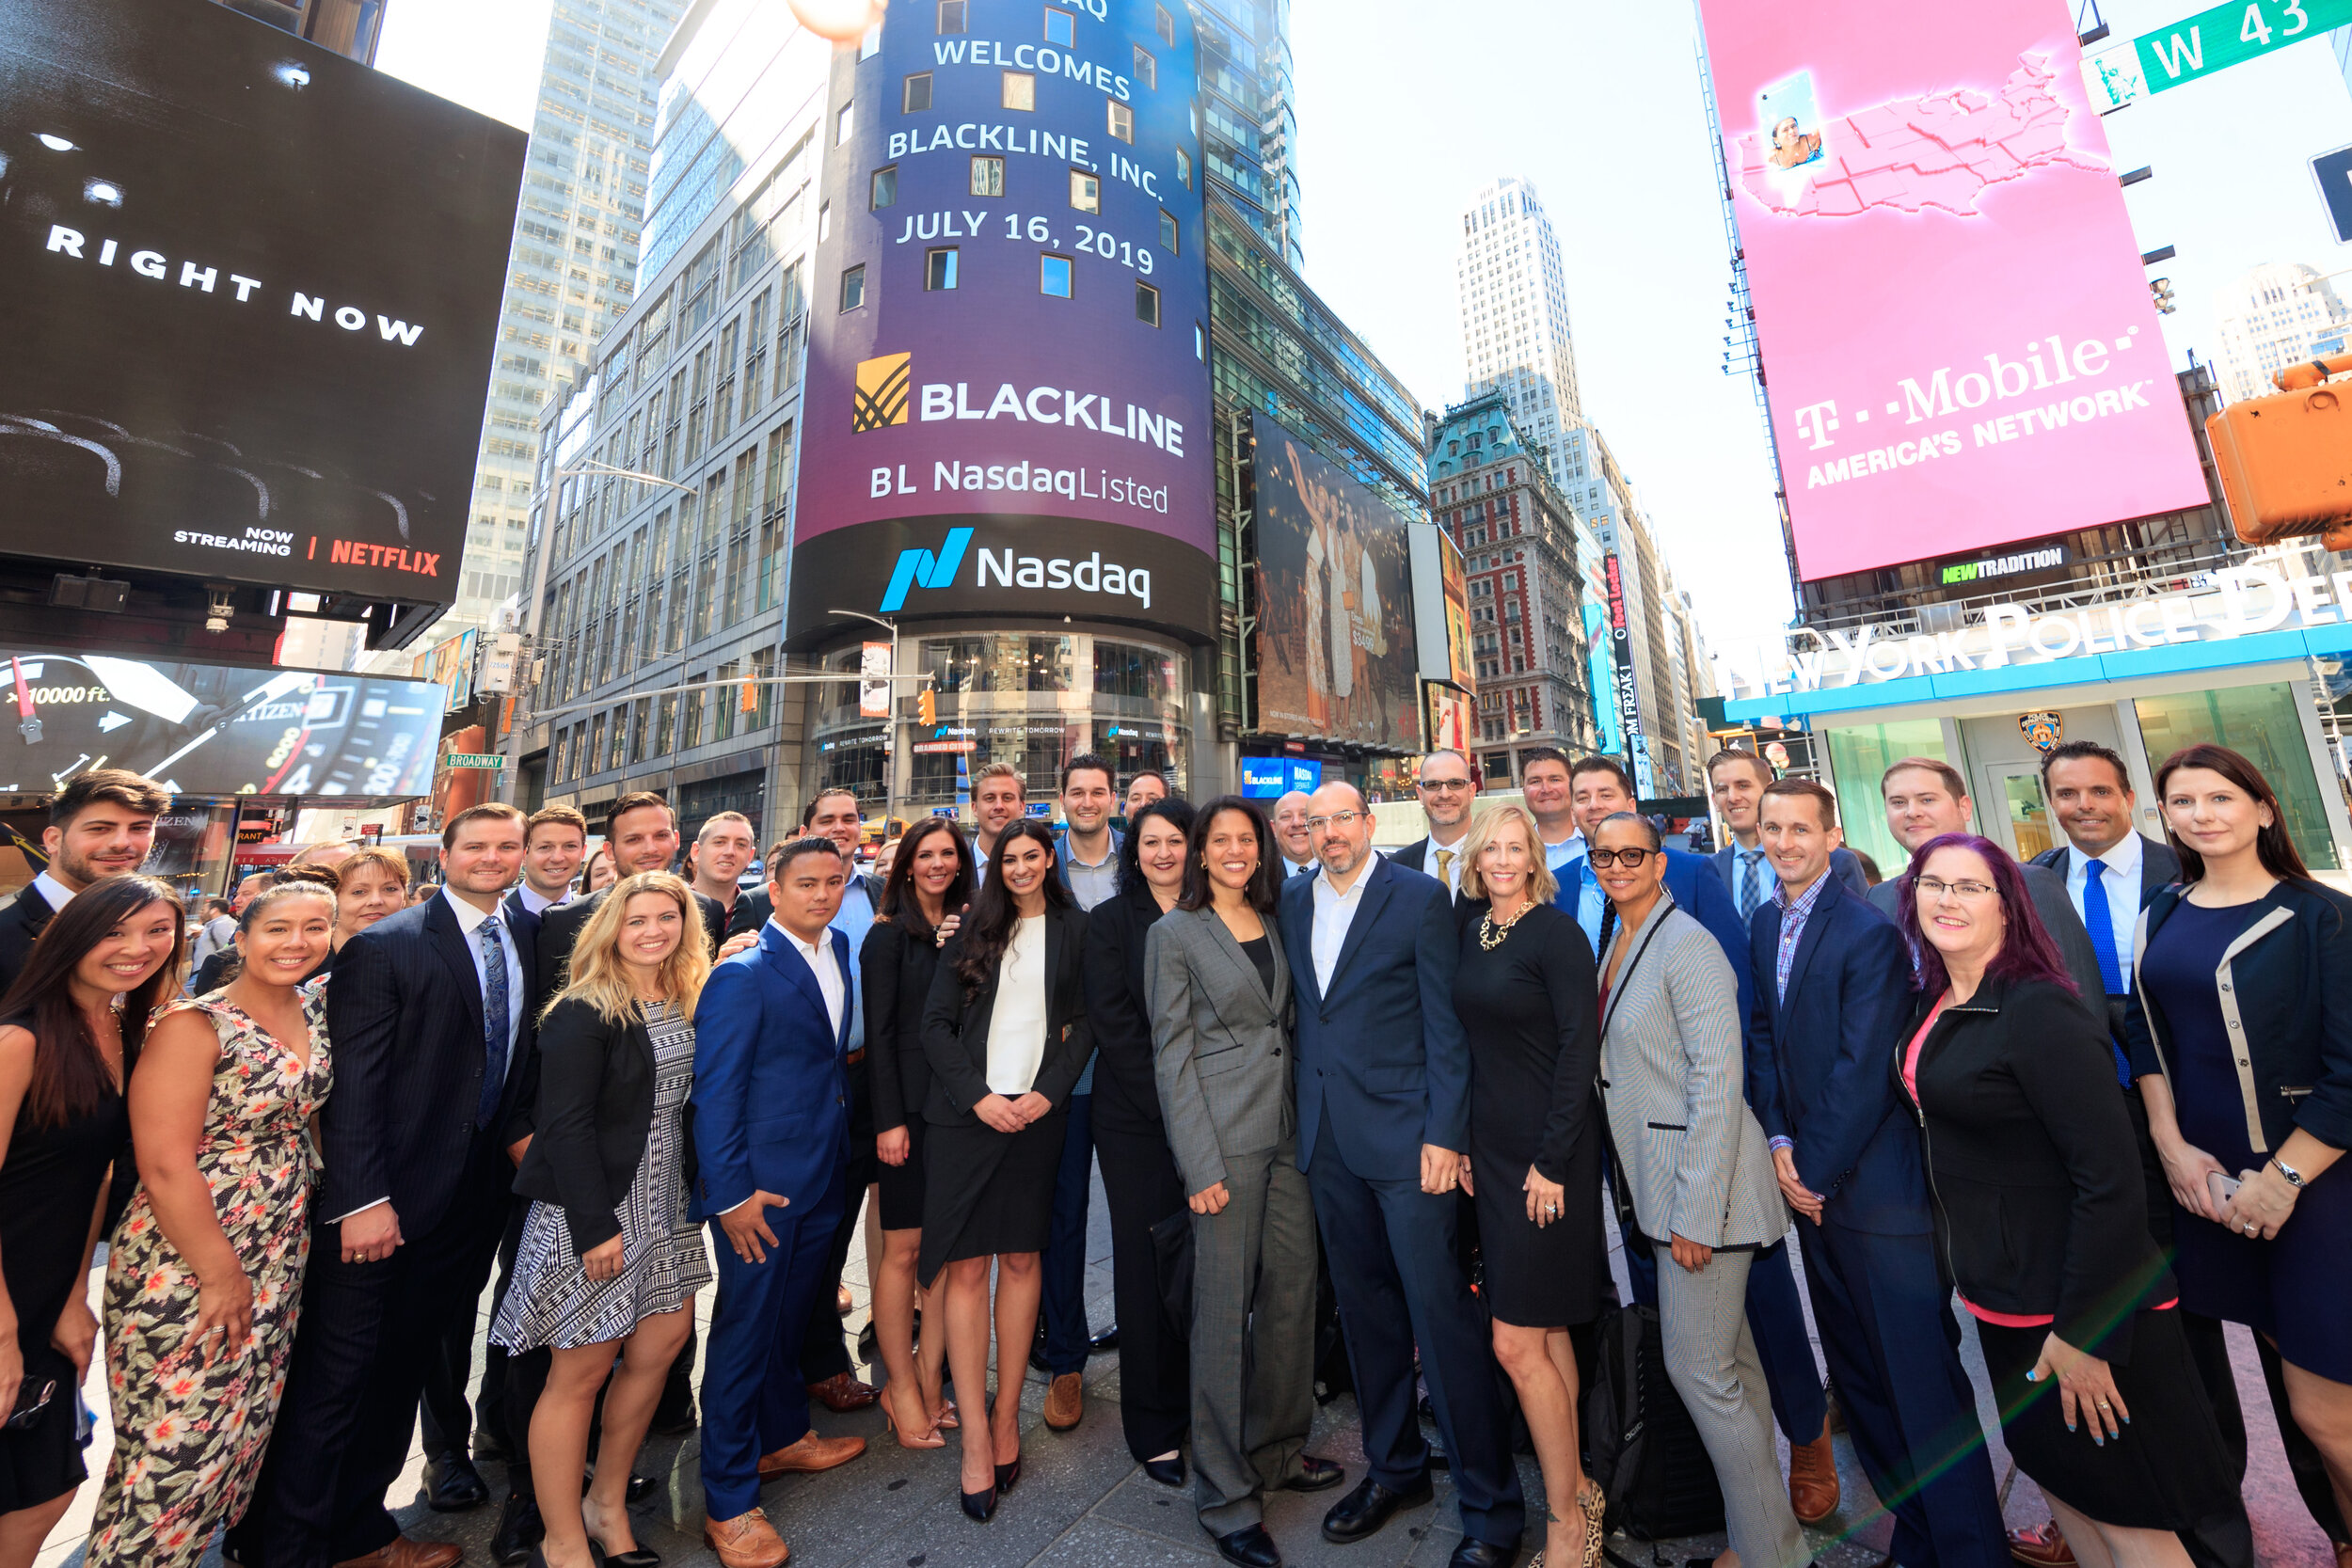 Joe (blue suit left of center) with his BlackLine team in NYC.